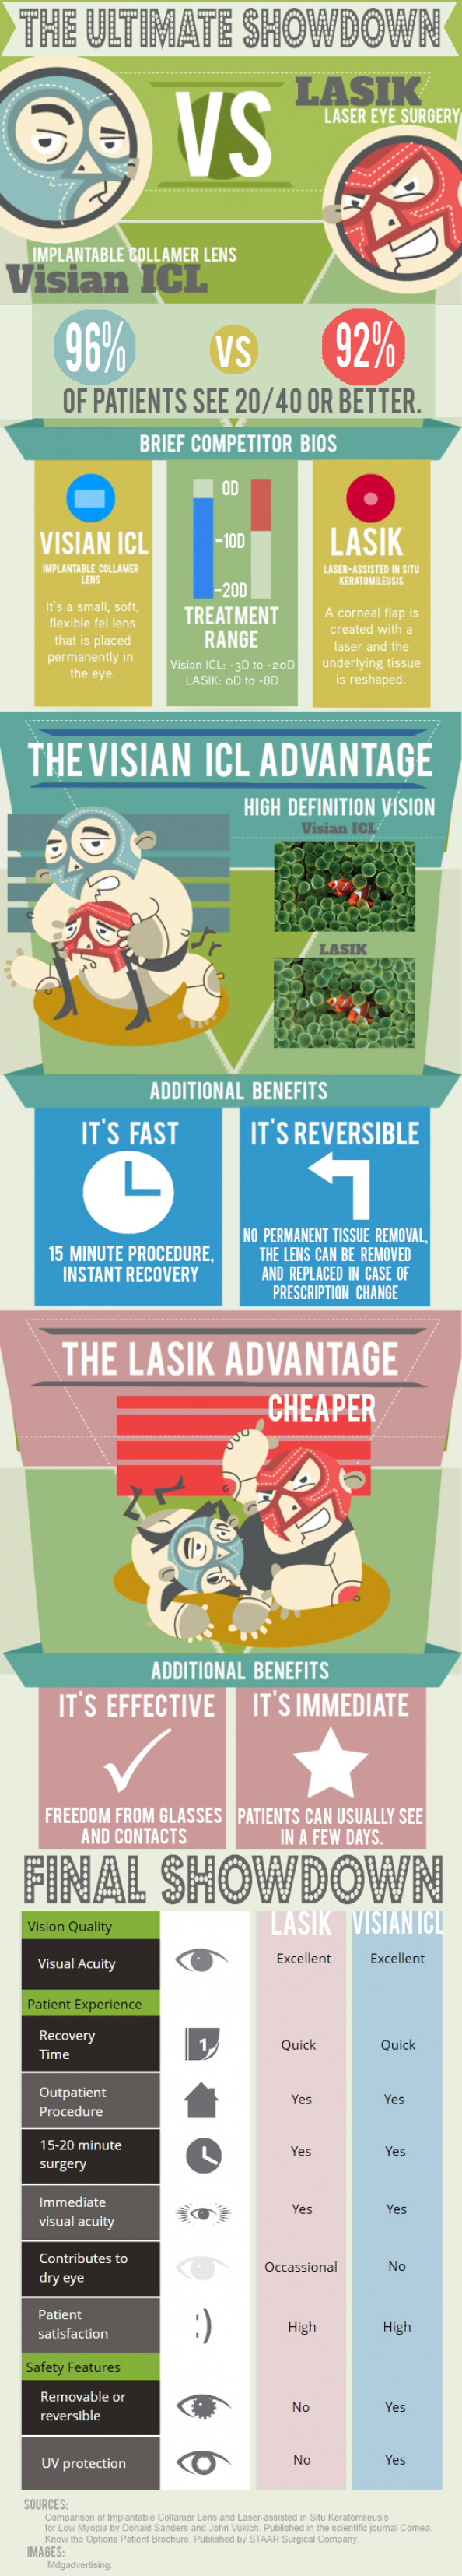 LASIK vs. Visian ICL: The Ultimate Showdown Infographic